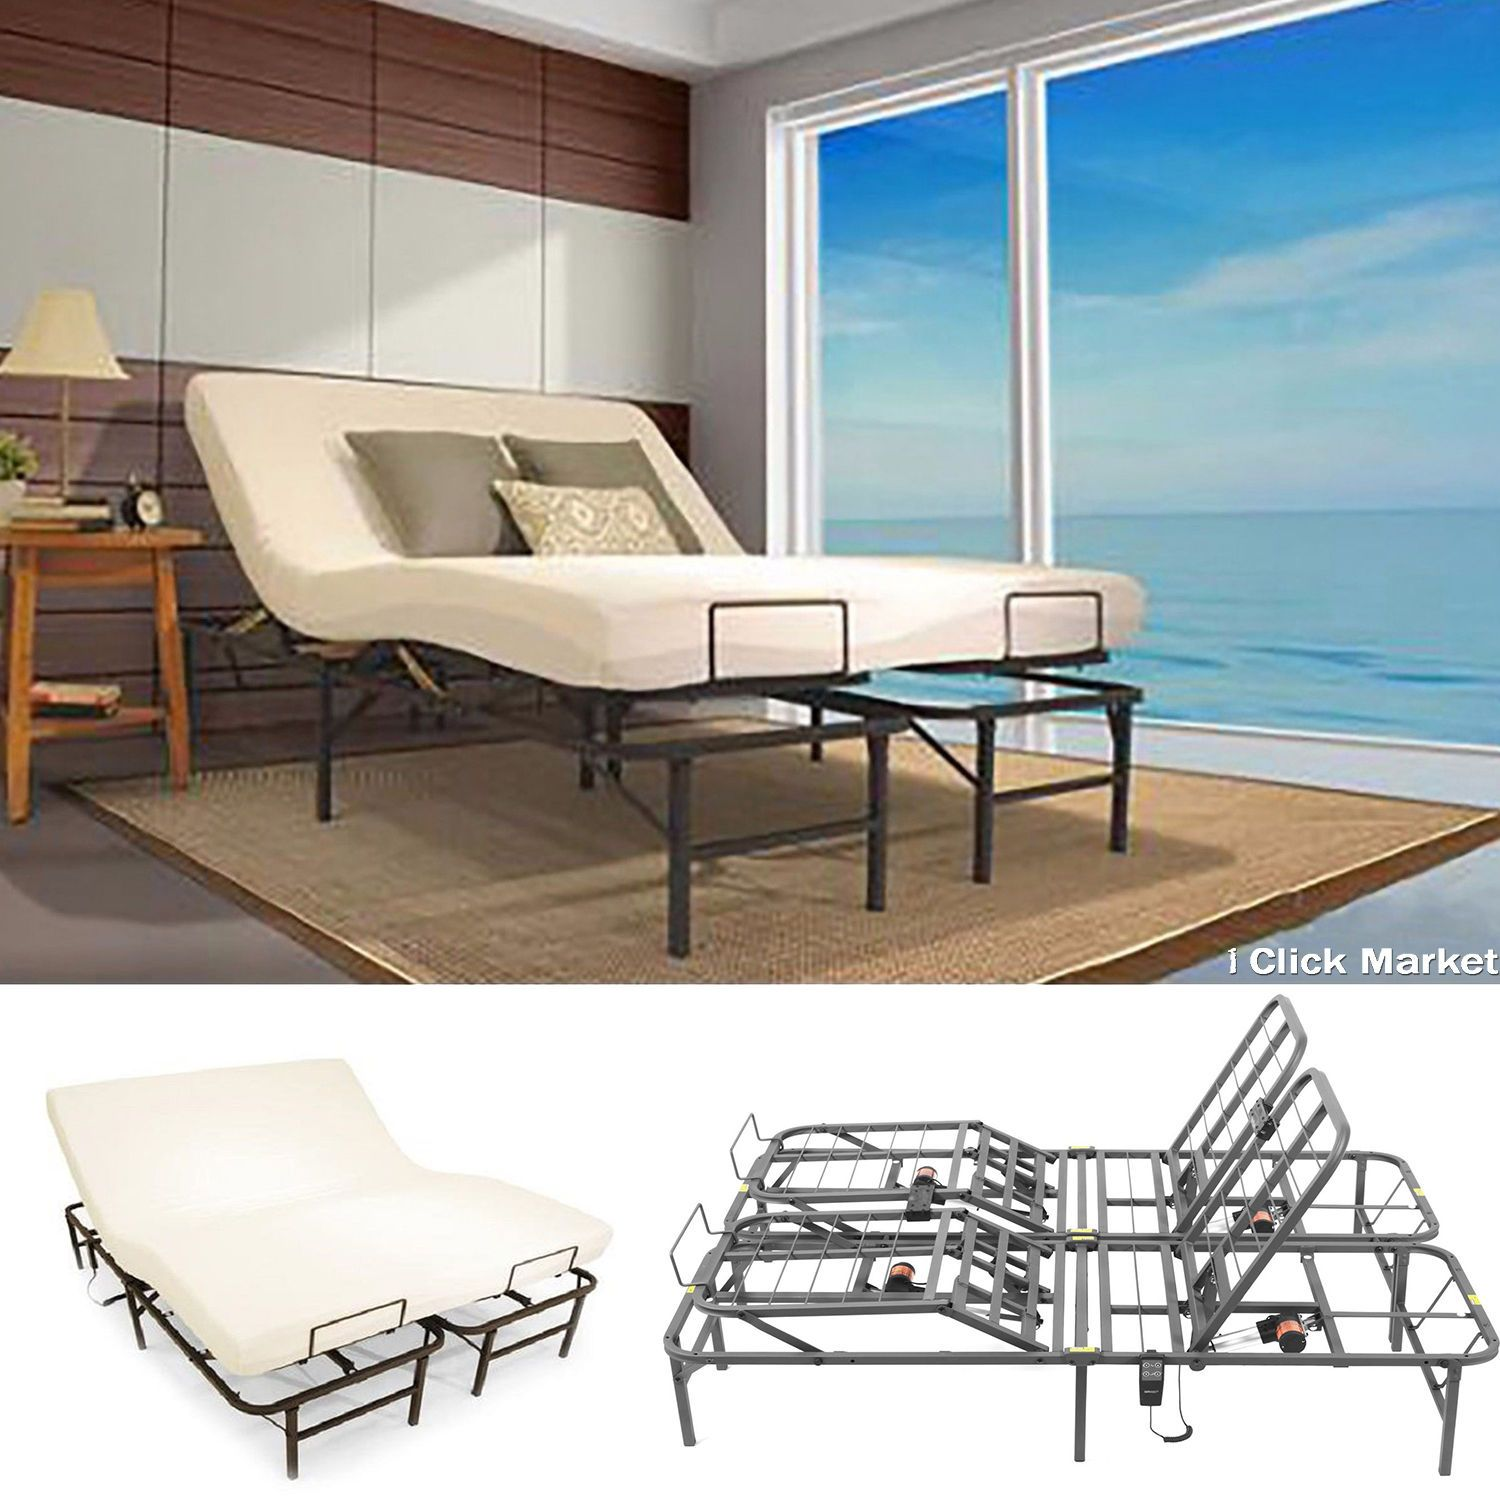 electric adjustable bed frame adjustable beds pinterest